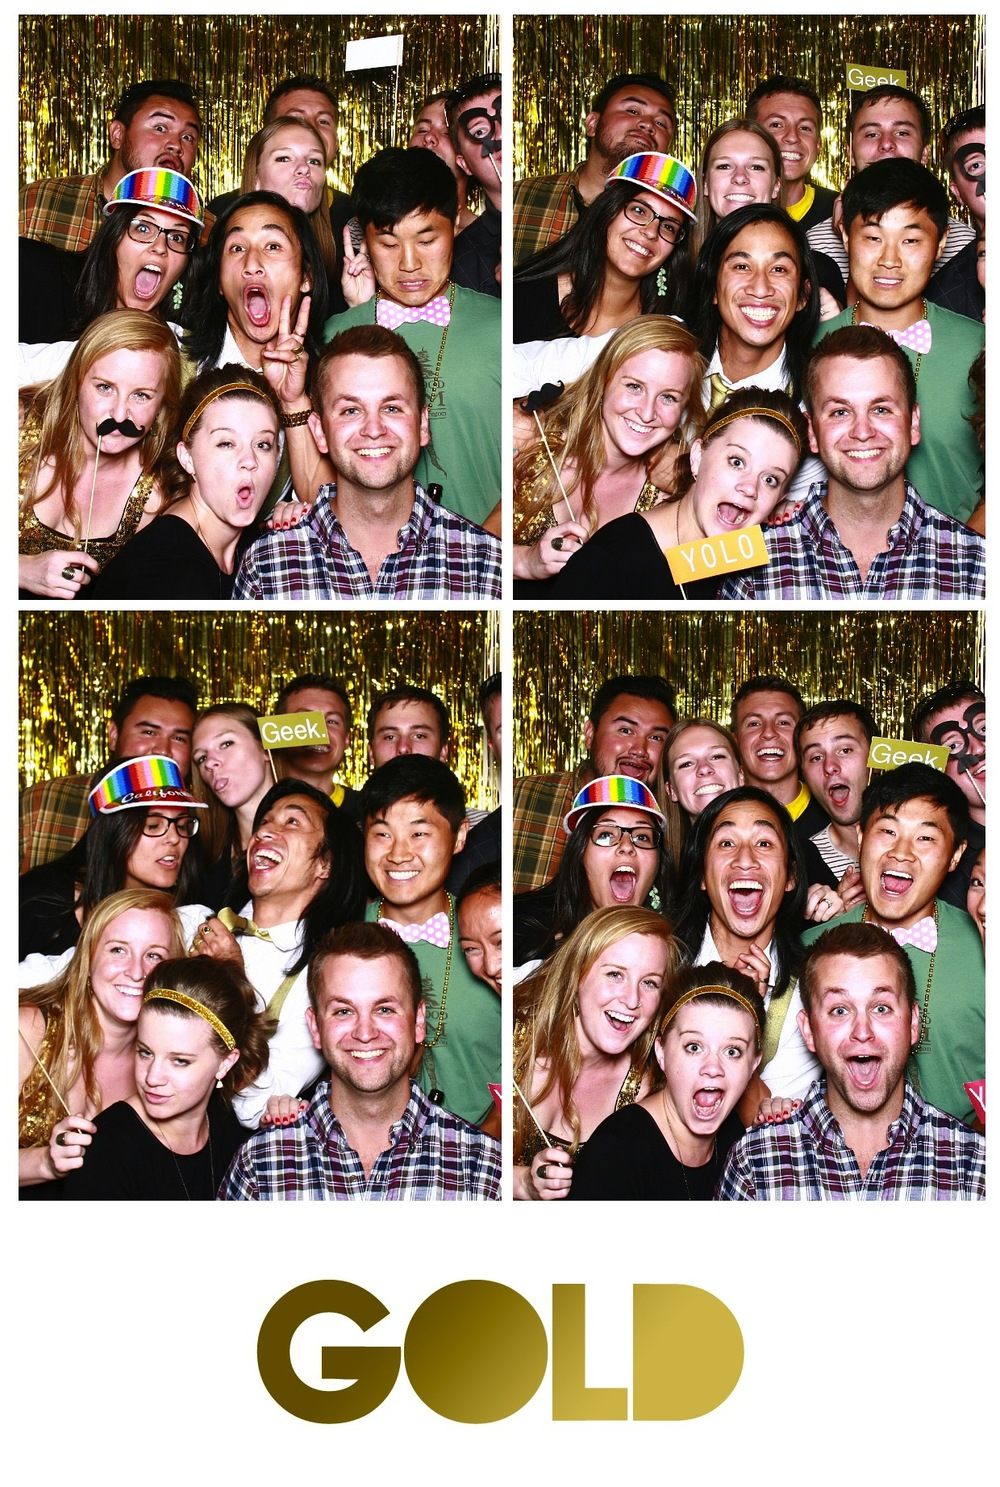 gold photobooth.jpg